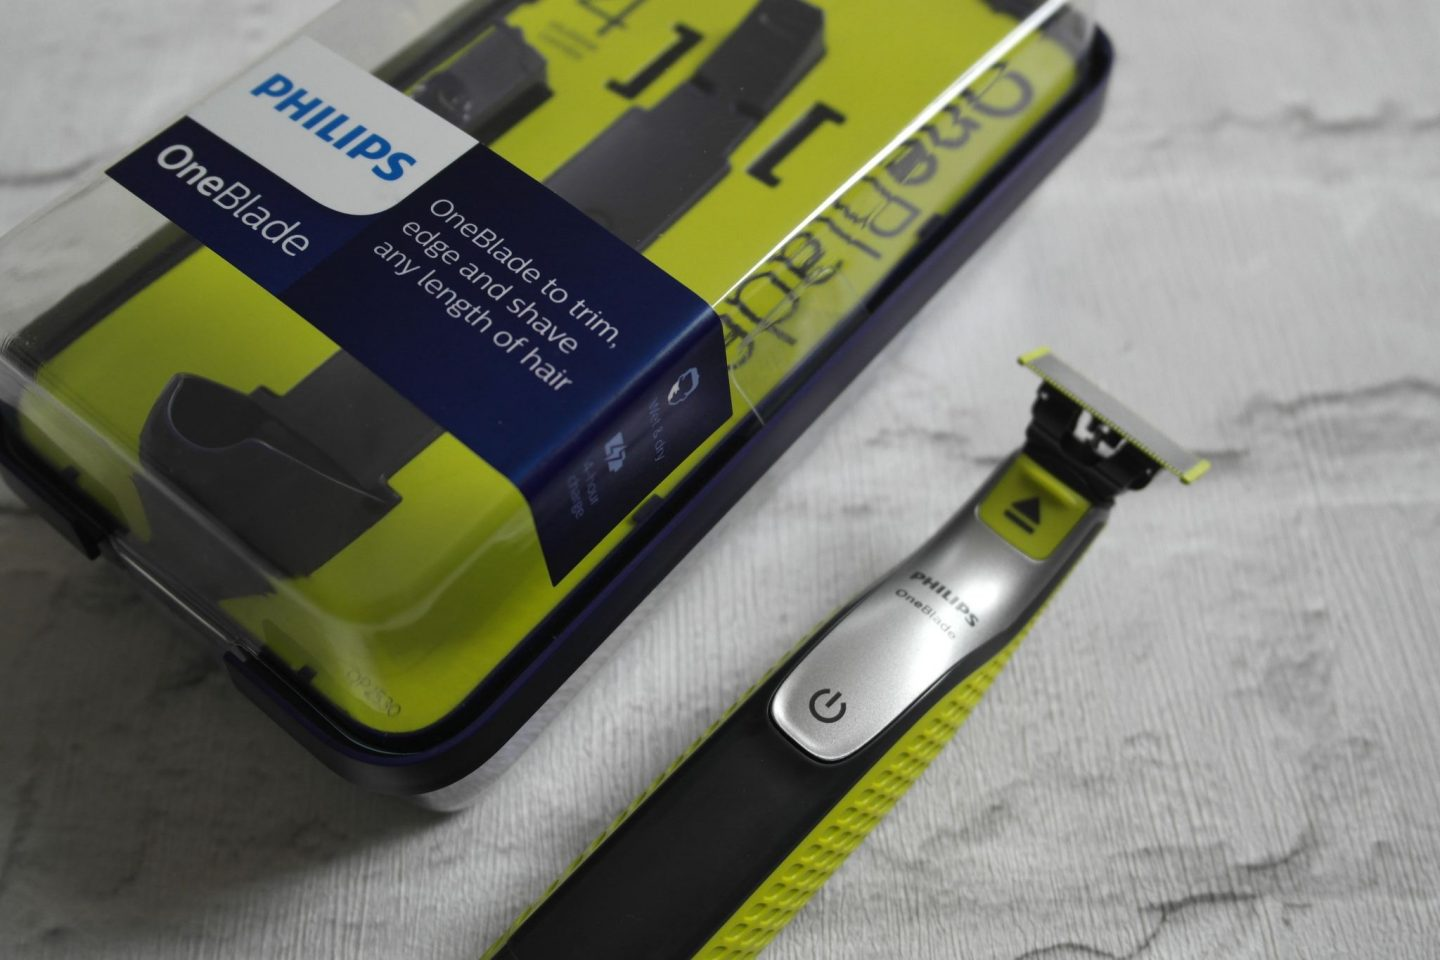 Phillips OneBlade